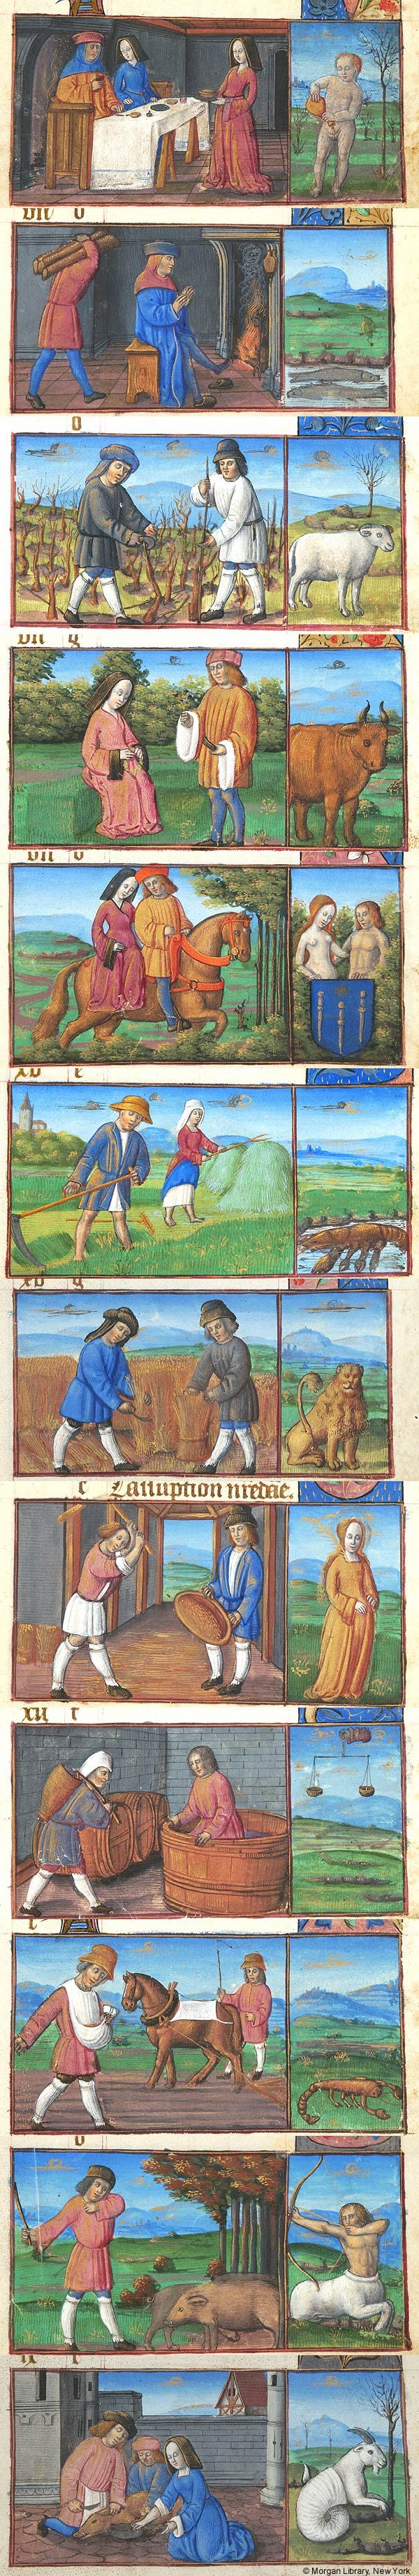 Signs of the Zodiac | Book of Hours | France, Langres | 1495-1500 | The Morgan Library & Museum